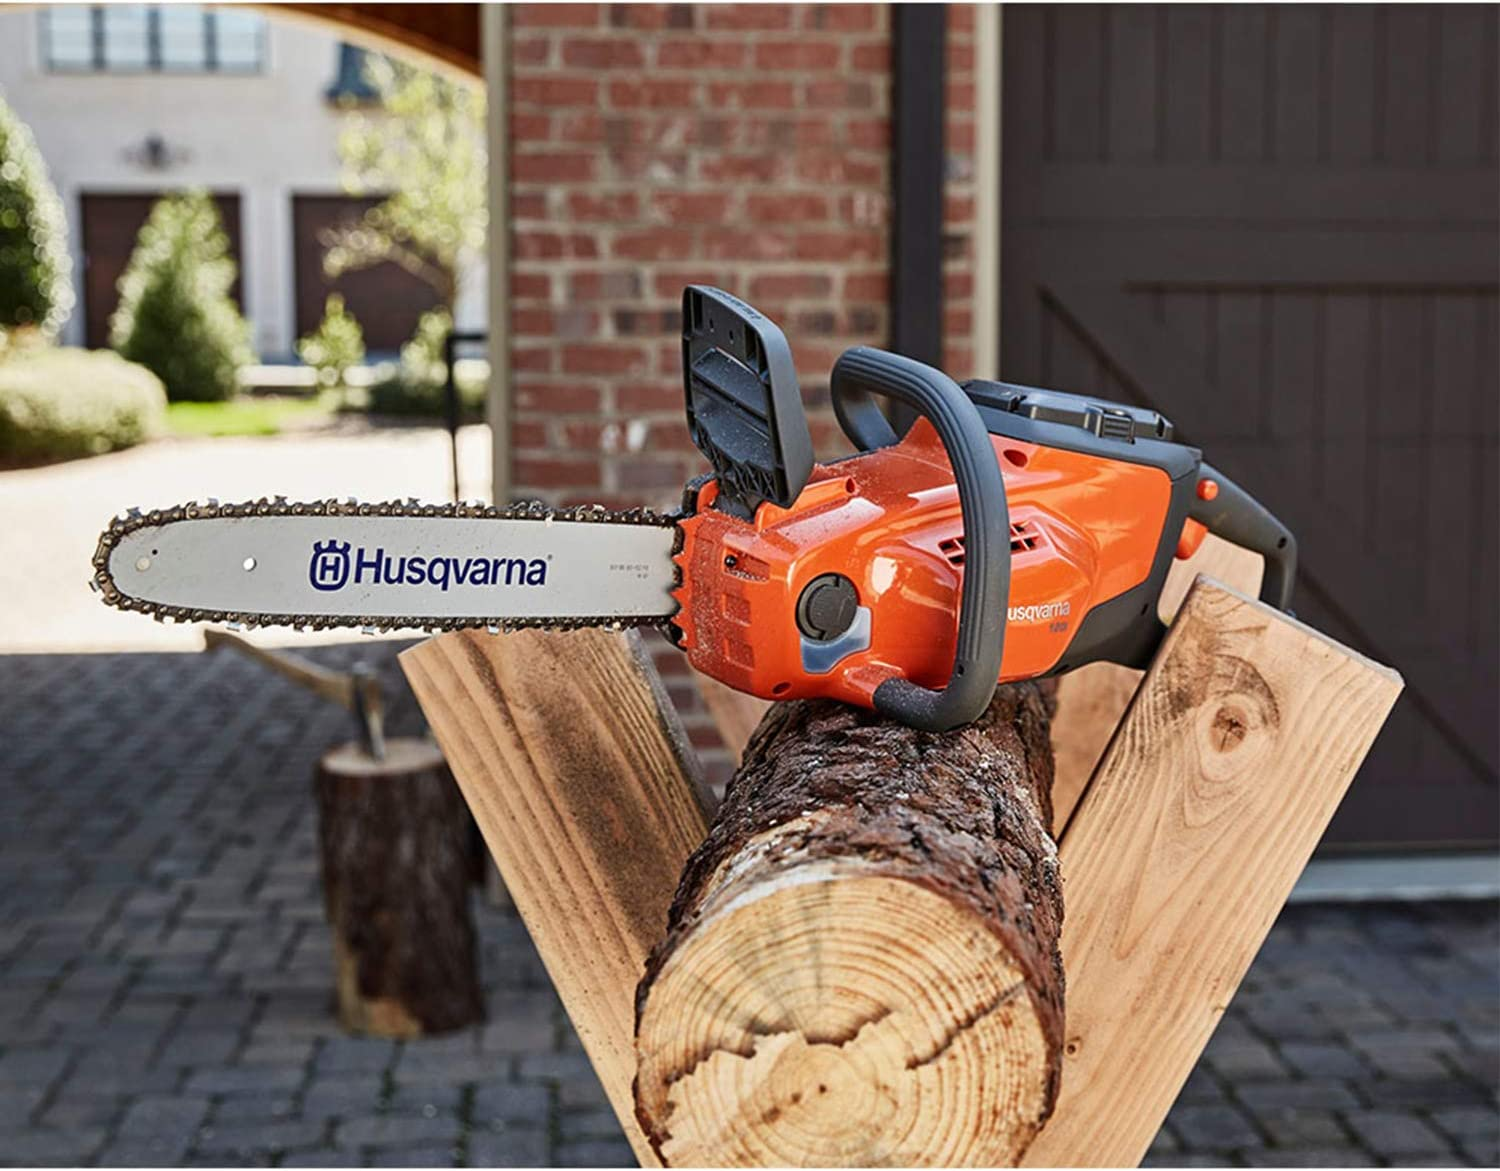 Best Cordless Chainsaw in 2021: Reviews & Buying Guide 3